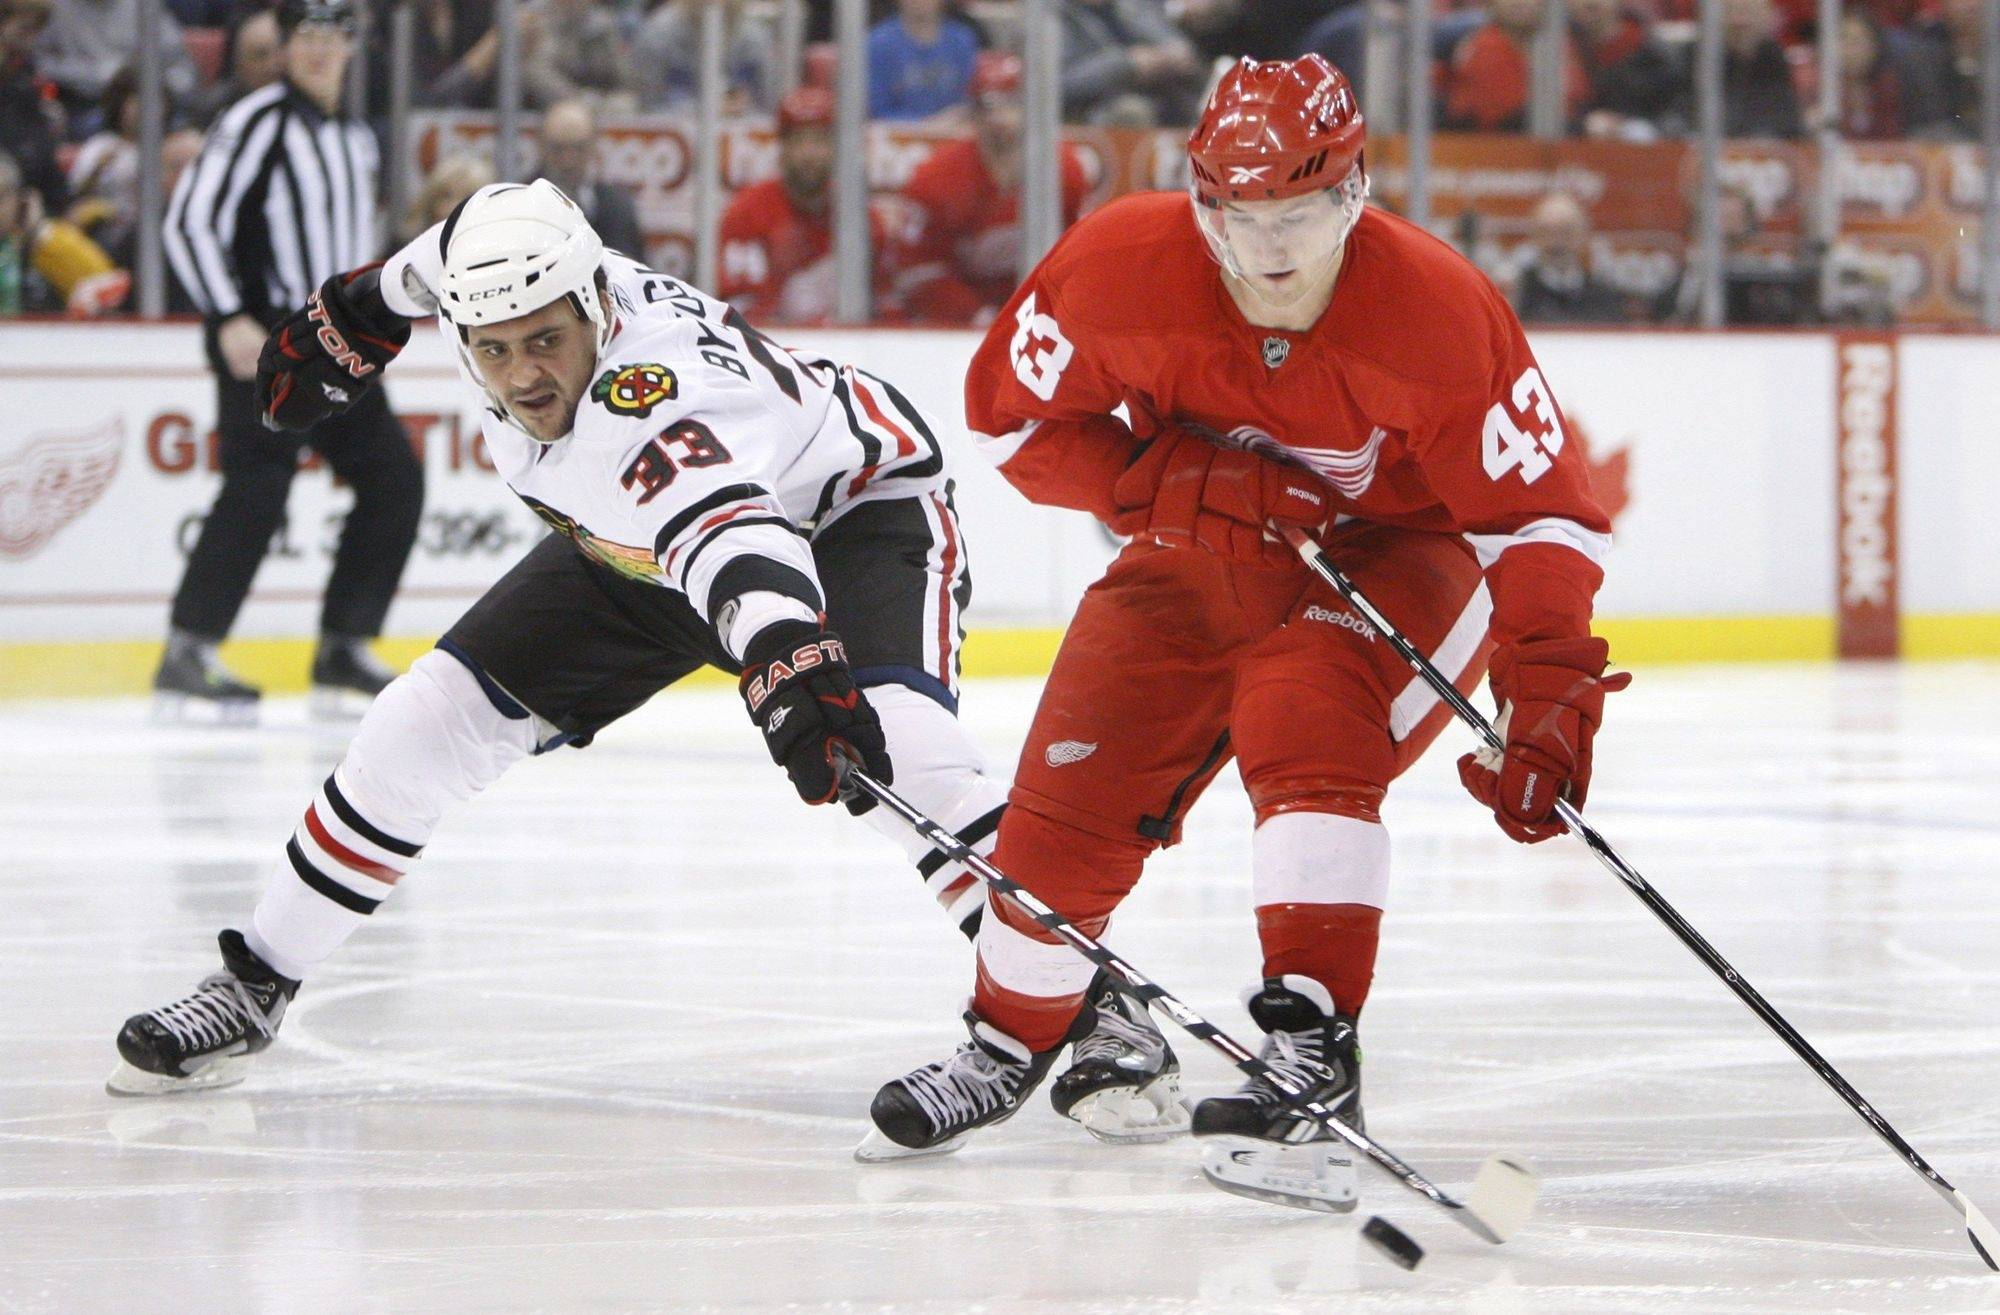 The Hawks' Dustin Byfuglien deflects the puck in front of Red Wings center Darren Helm on Sunday in Detroit.